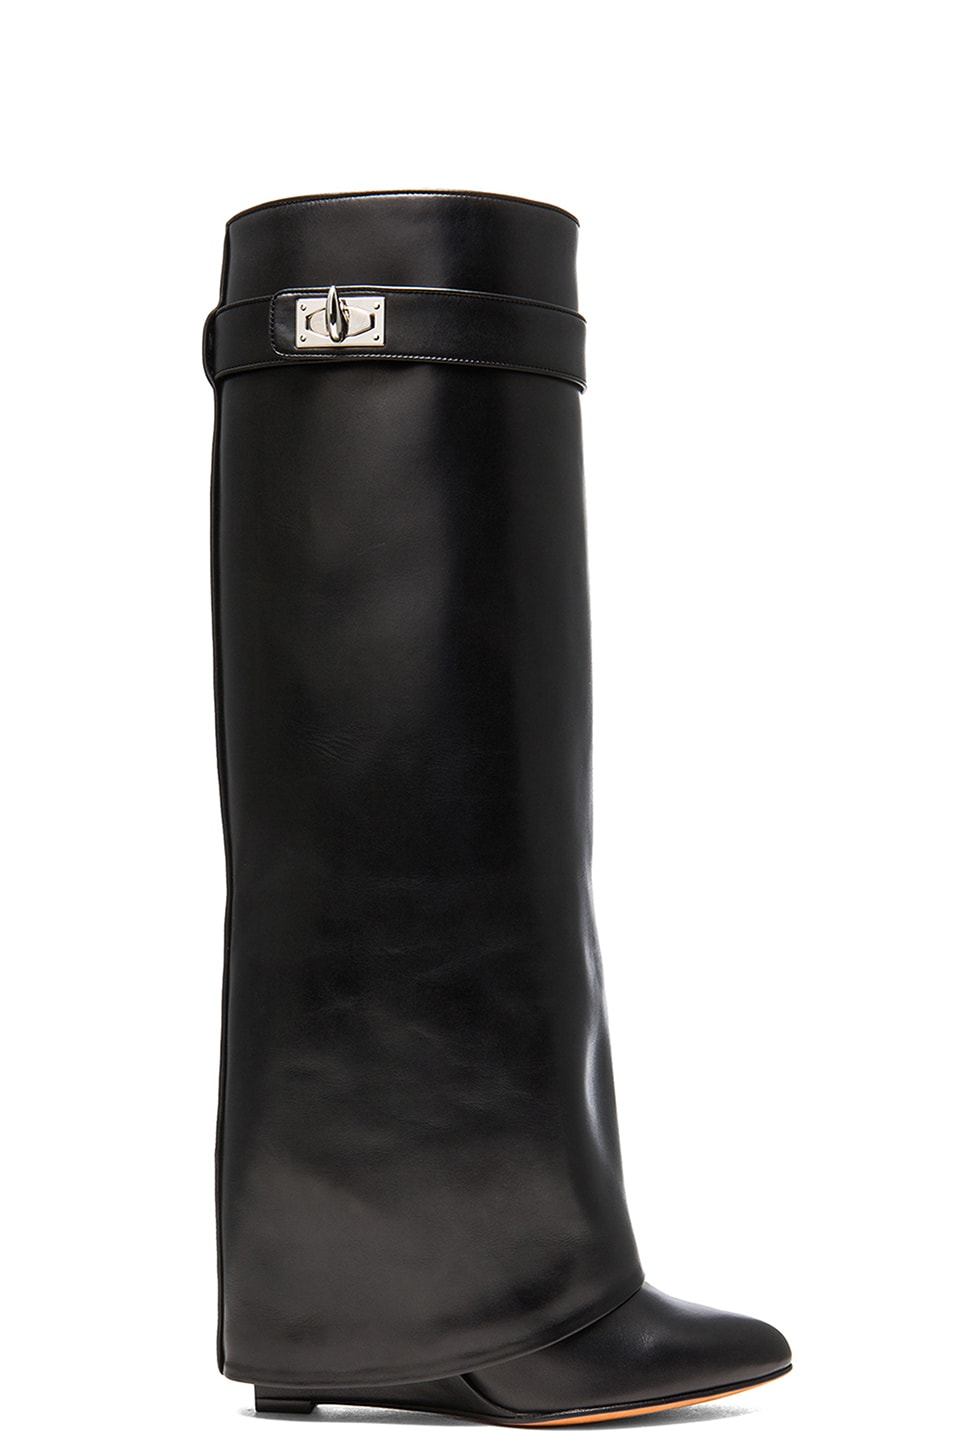 Givenchy Shark Lock Tall Leather Pant Boots In Black Fwrd